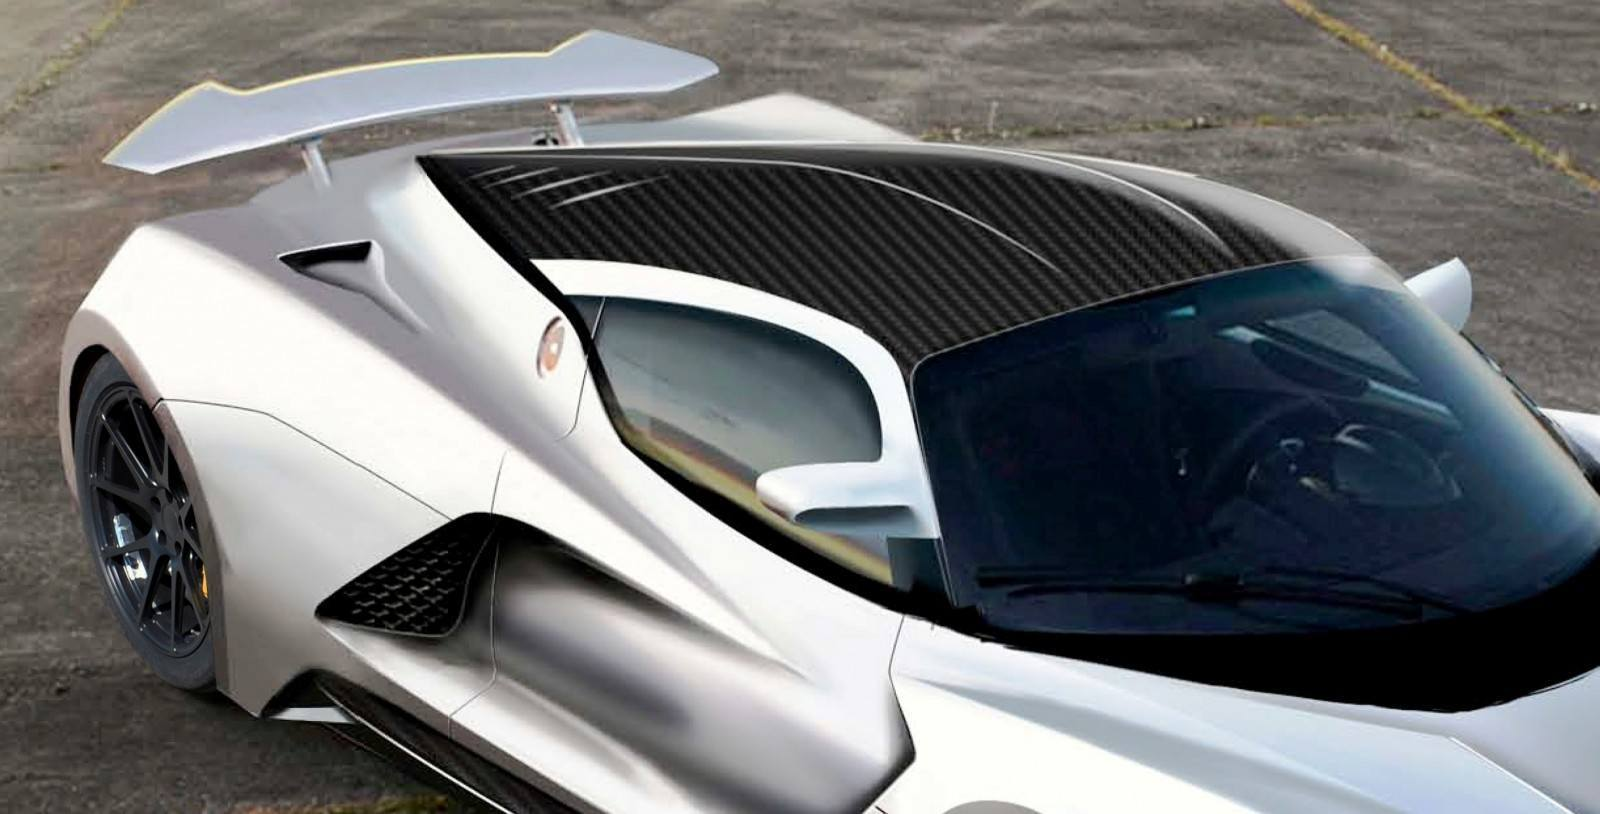 2015 Hennessey Venom F5 Seeks Real 290MPH VMax Via New V8TT, Active Aero and Low-Drag Design 5